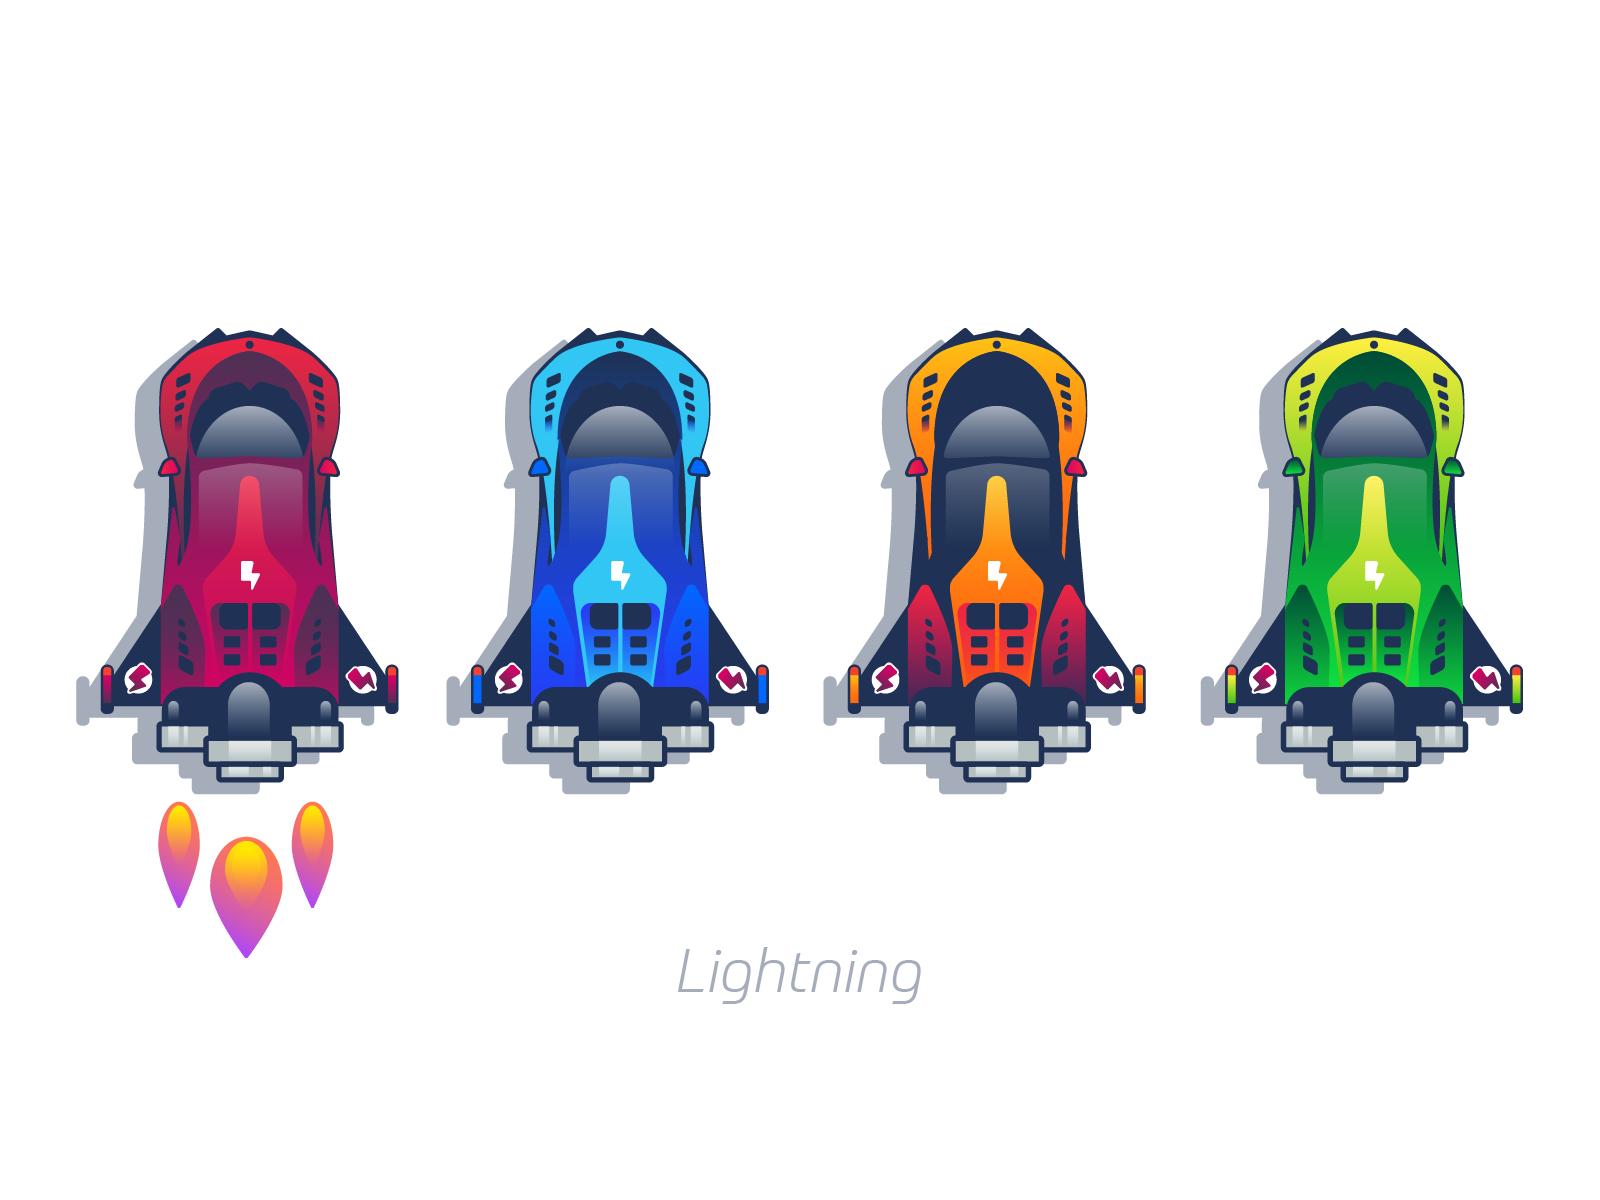 Lightning cars graphic design illustration